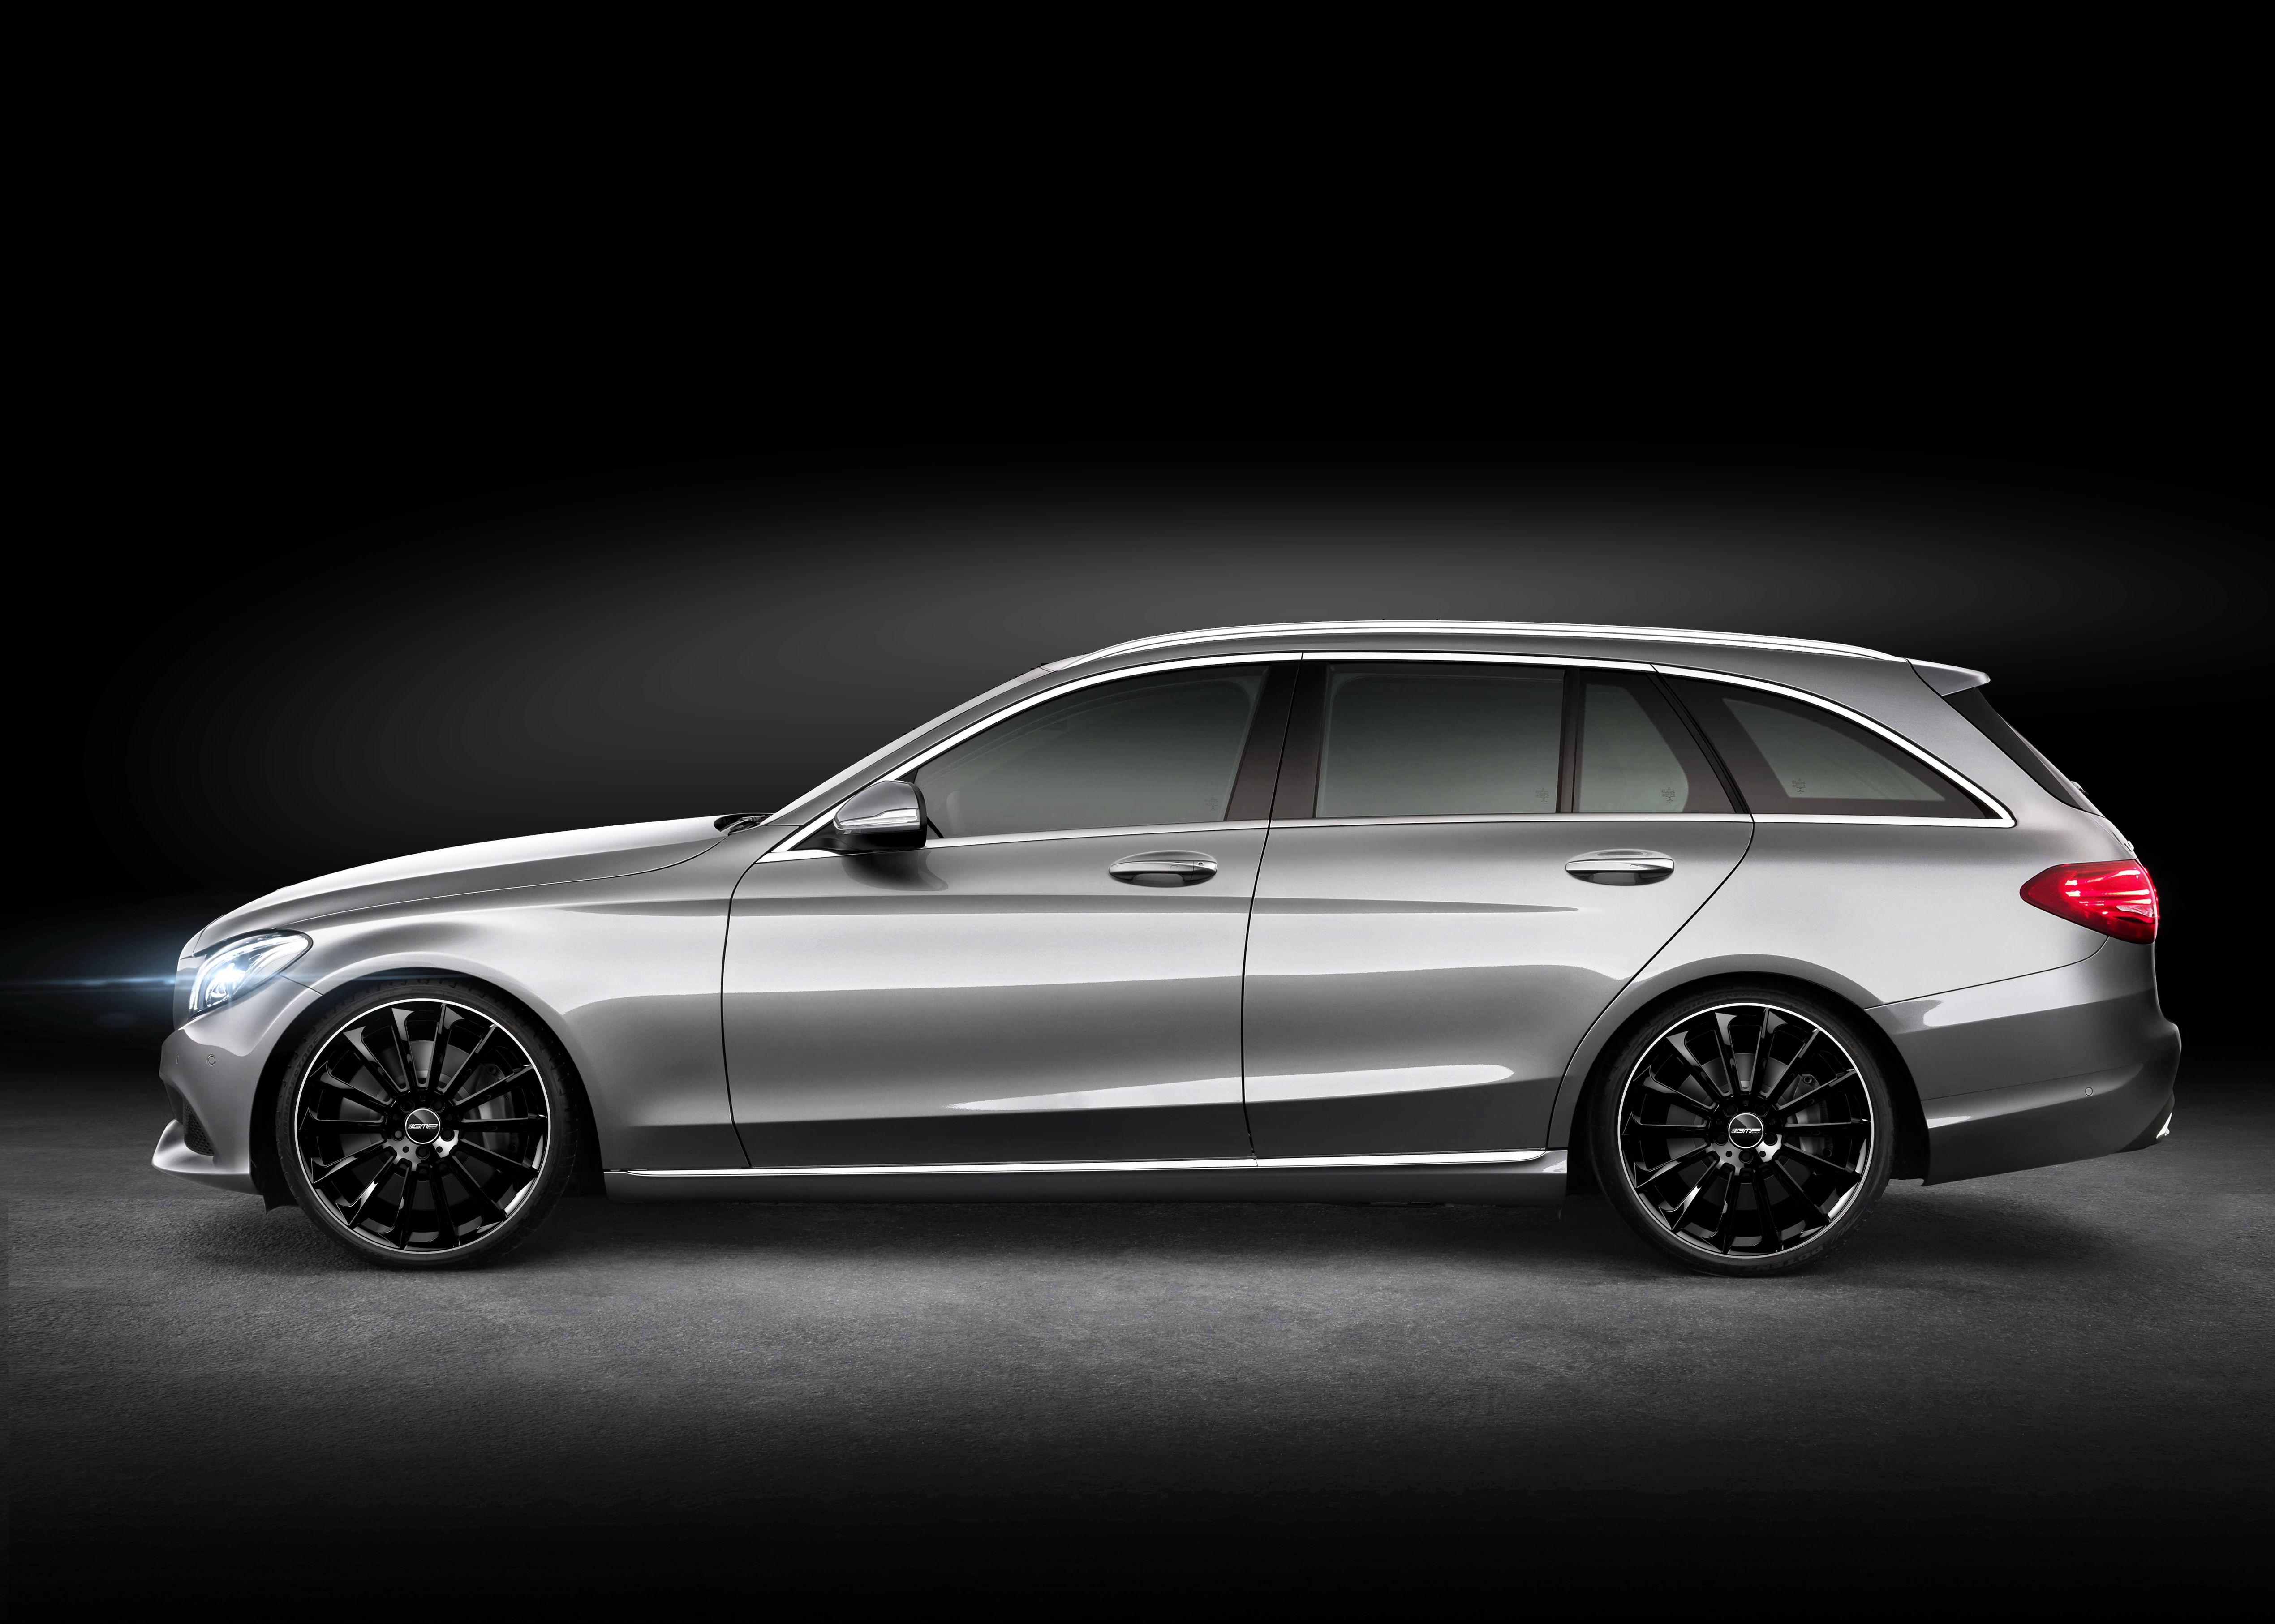 Mercedes benz c class station wagon with stellar black for Mercedes benz station wagon